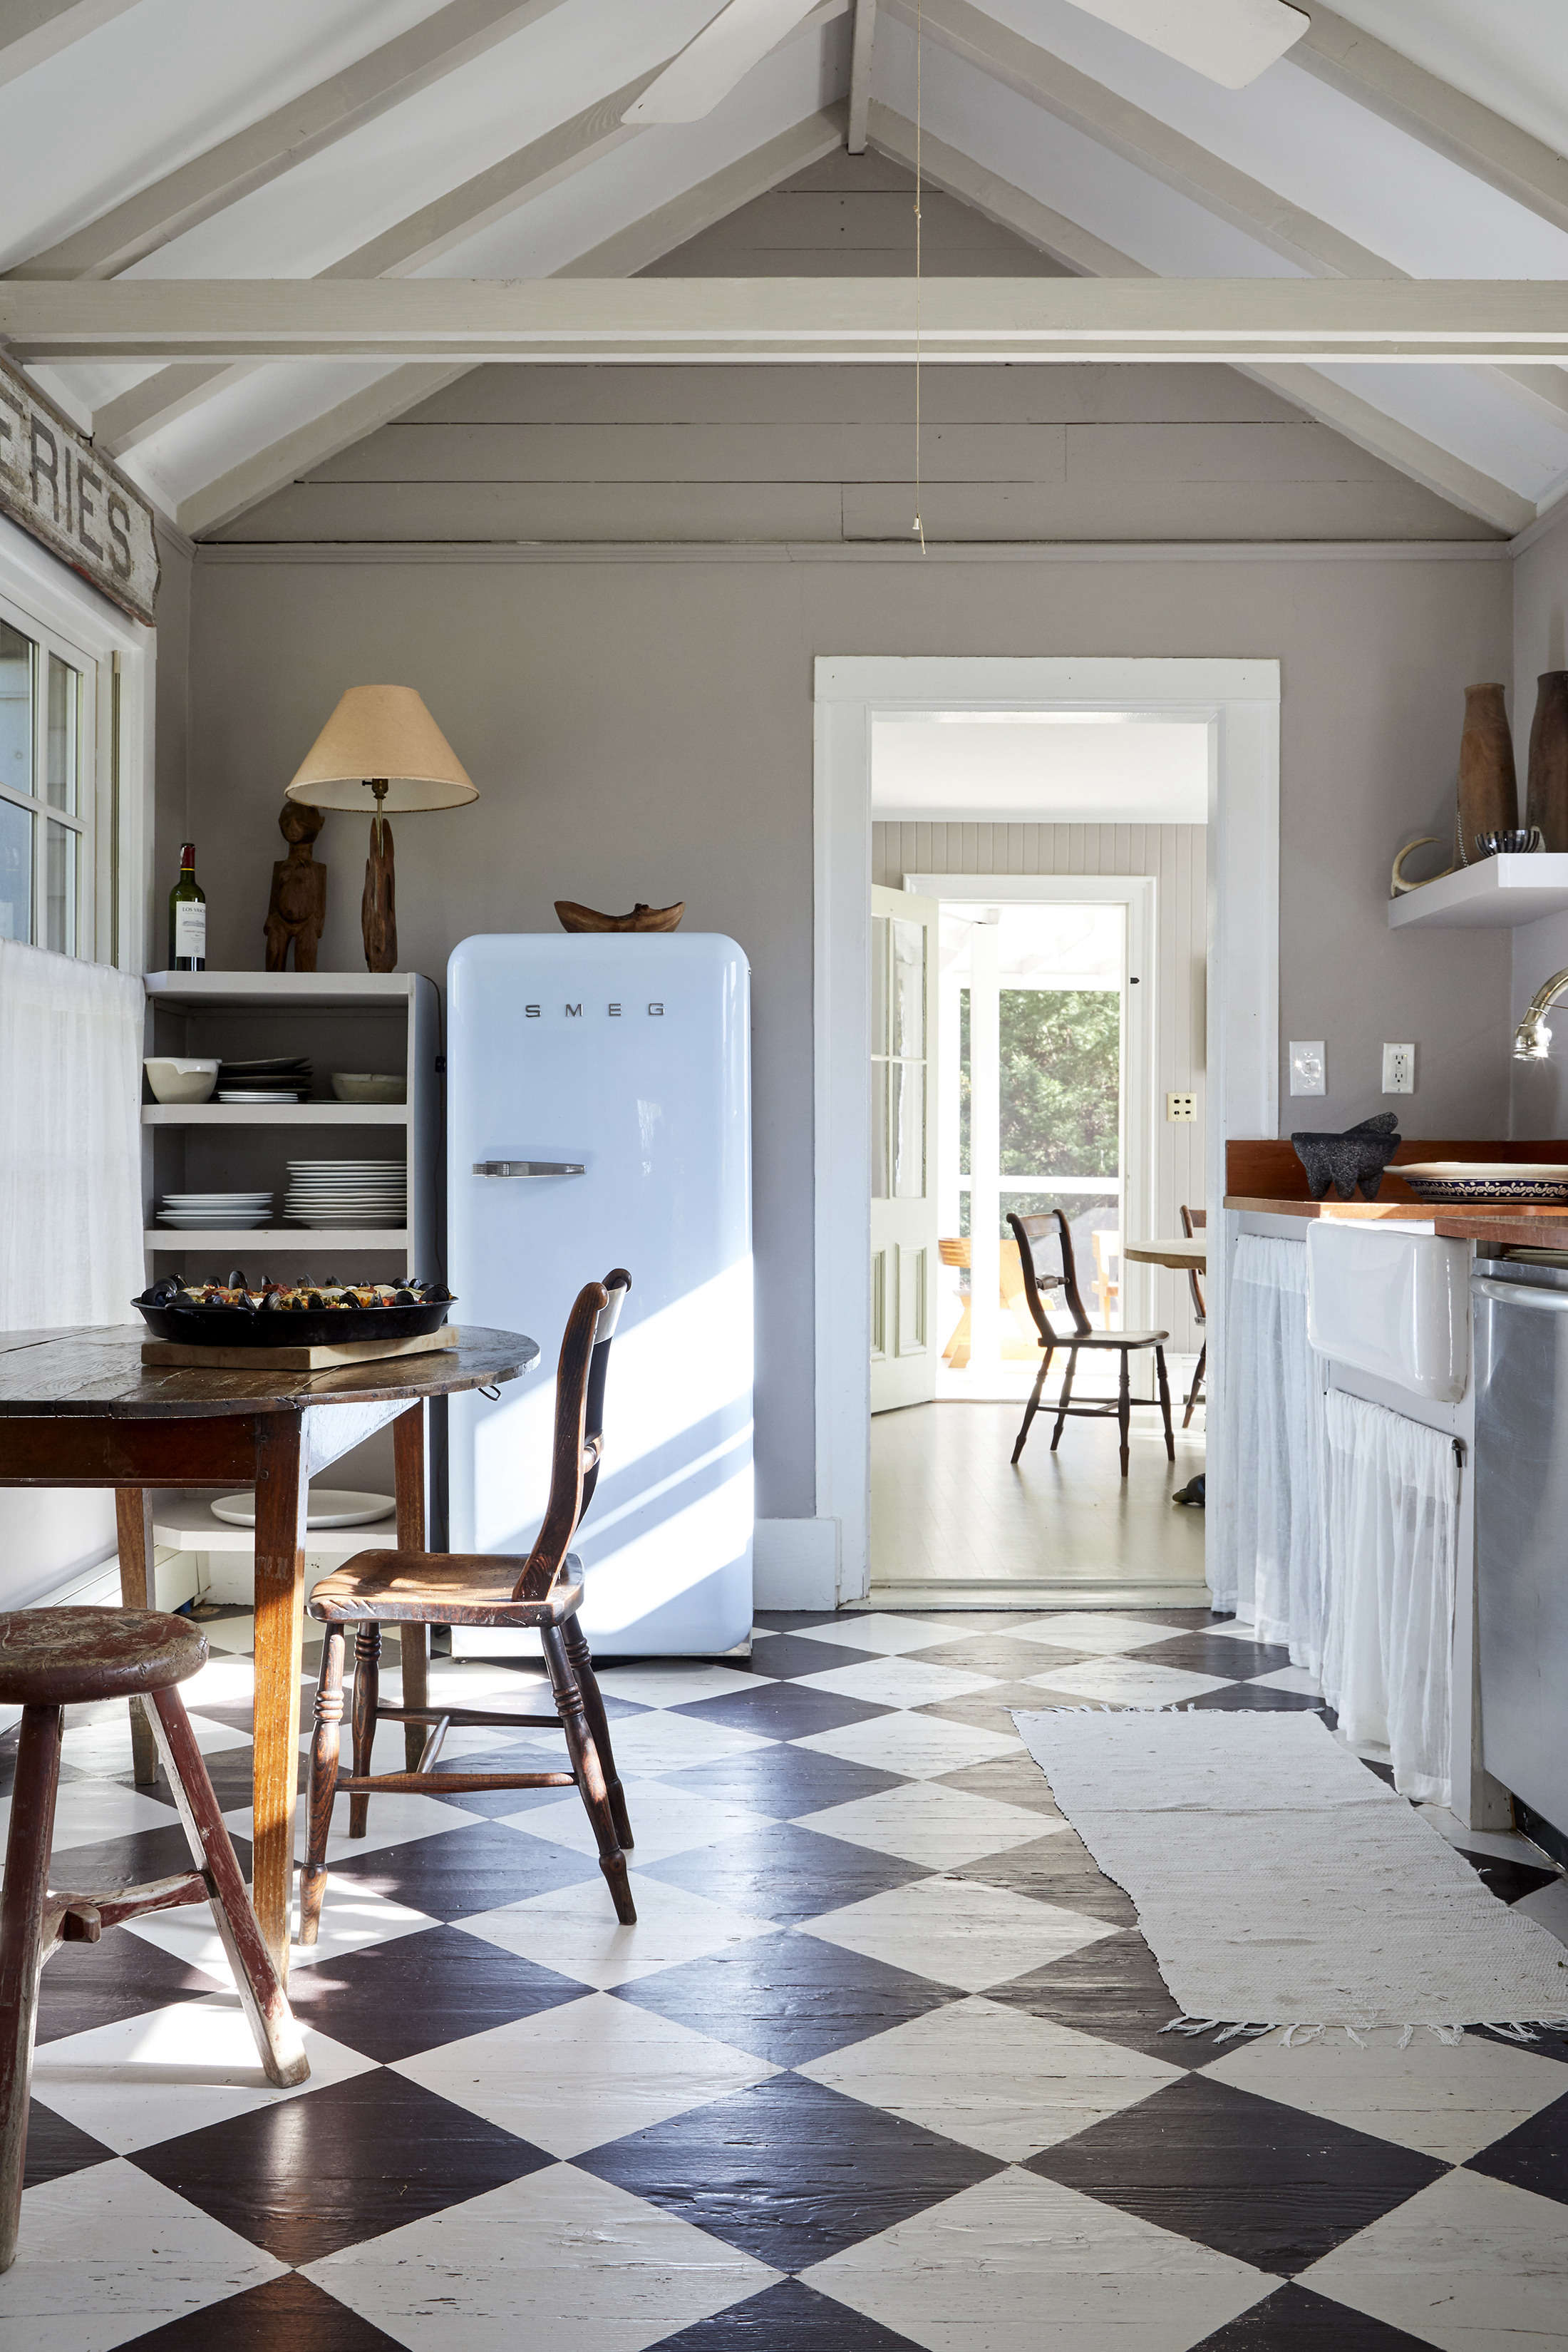 Steal This Look: An Antique Dealer's DIY Kitchen, Painted Checkerboard Floor Included - Remodelista